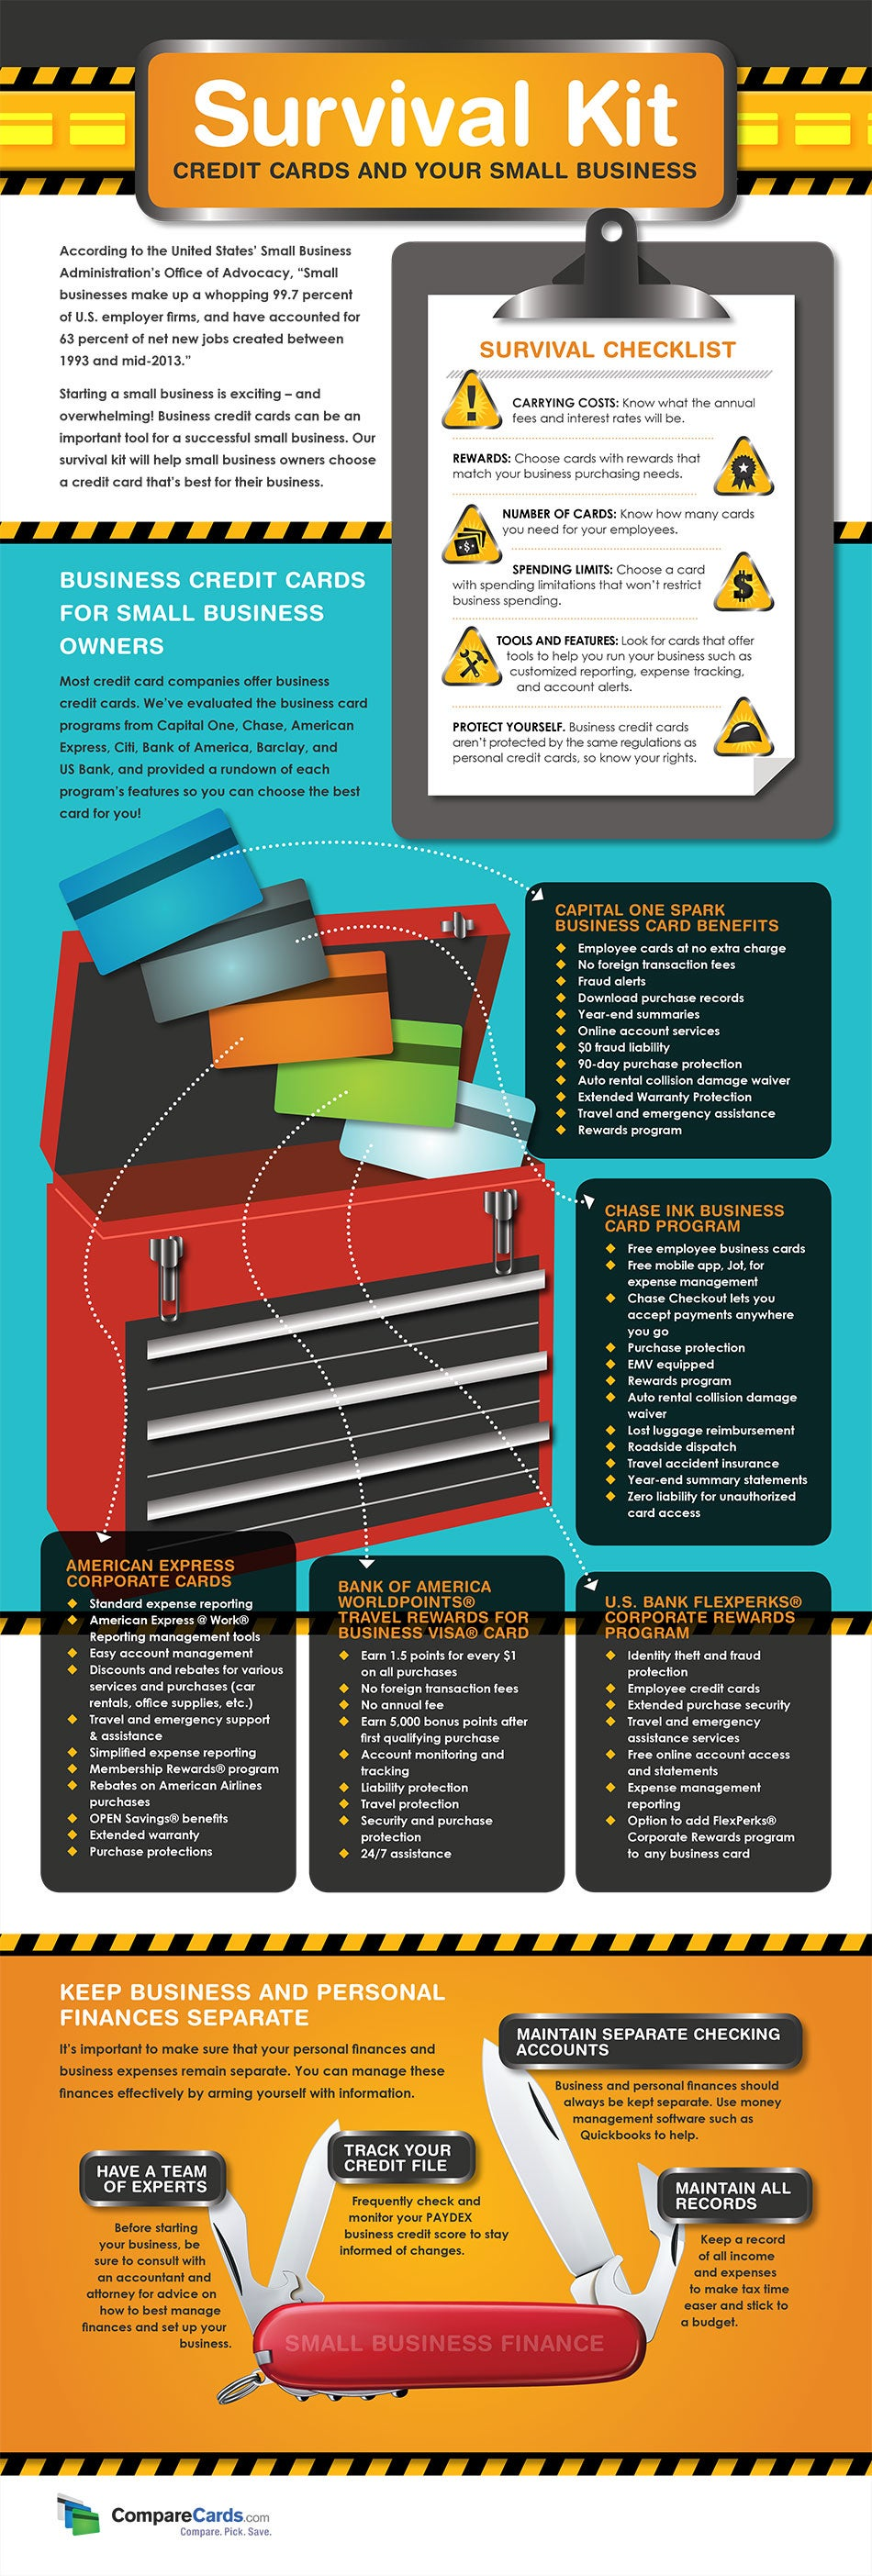 The Credit-Card Survival Kit Your Small Business Needs (Infographic)